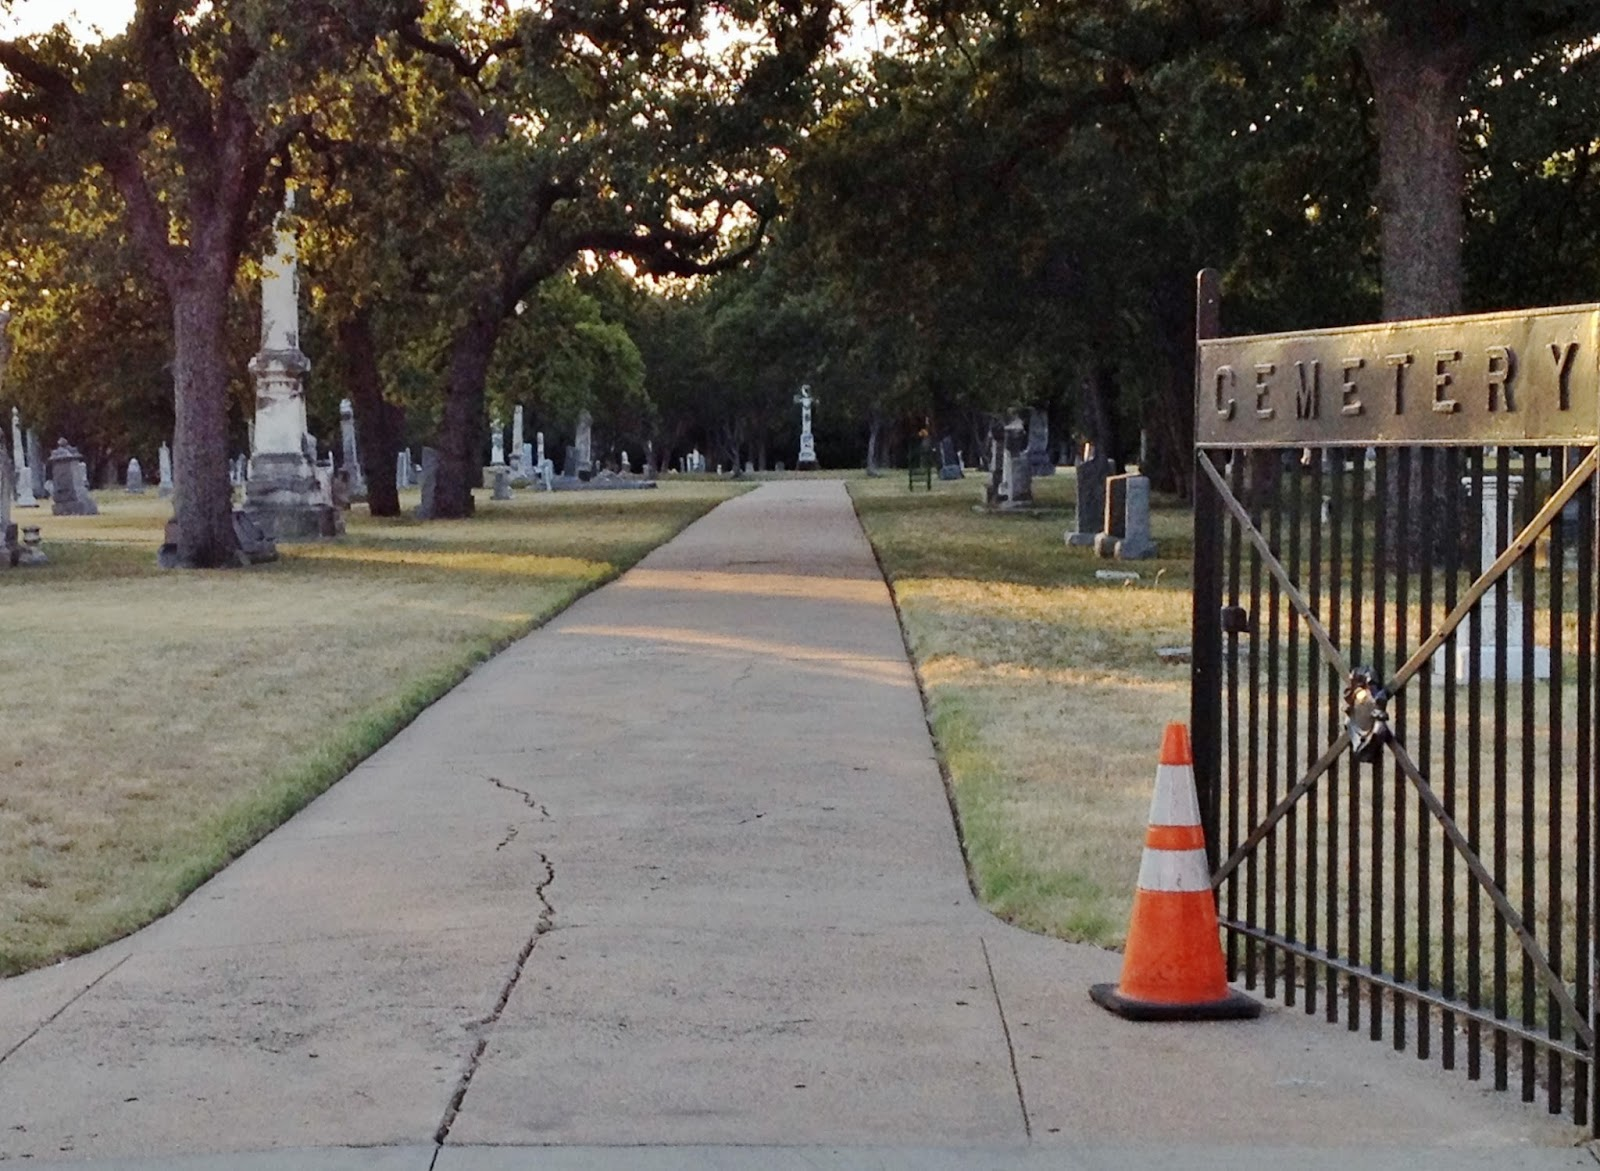 visitors who don t opt for the dallas historical society s tour will still have some exposure to the history and famous residents of each graveyard